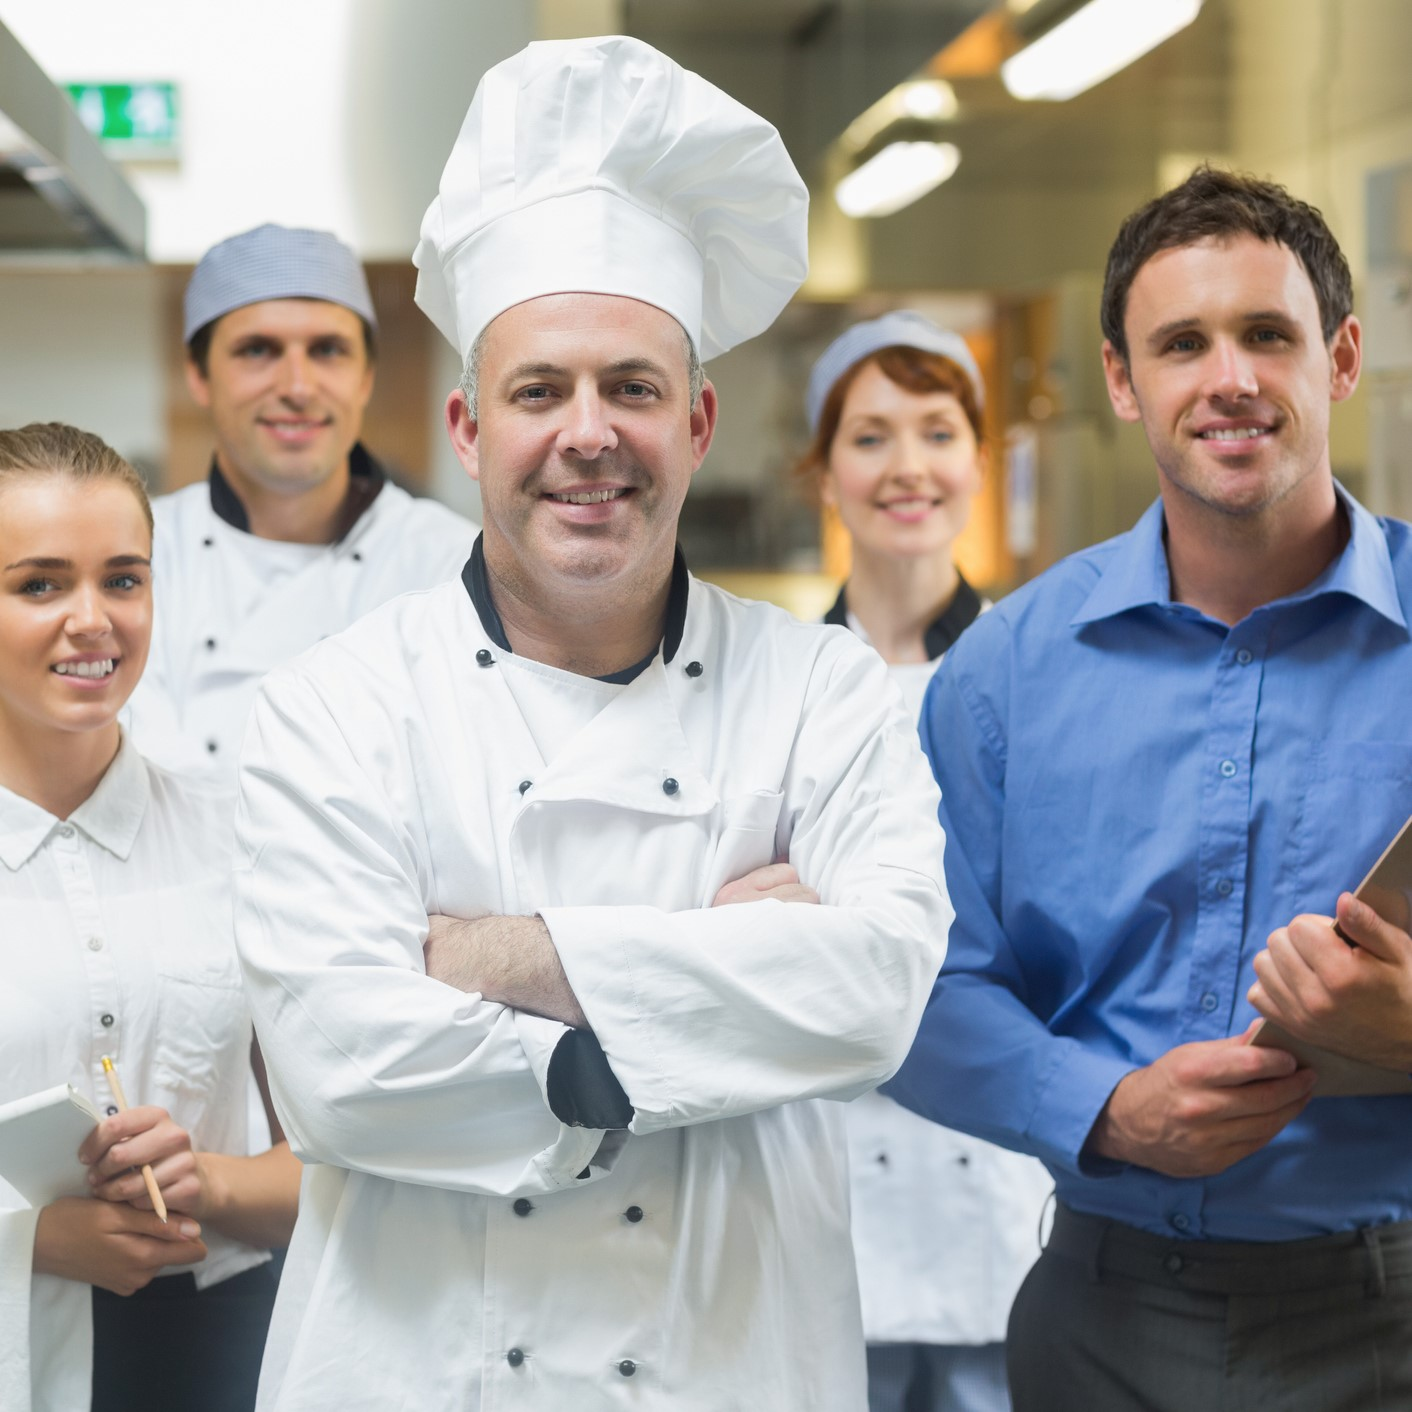 Head chef posing with the team behind him in a profesional kitchen